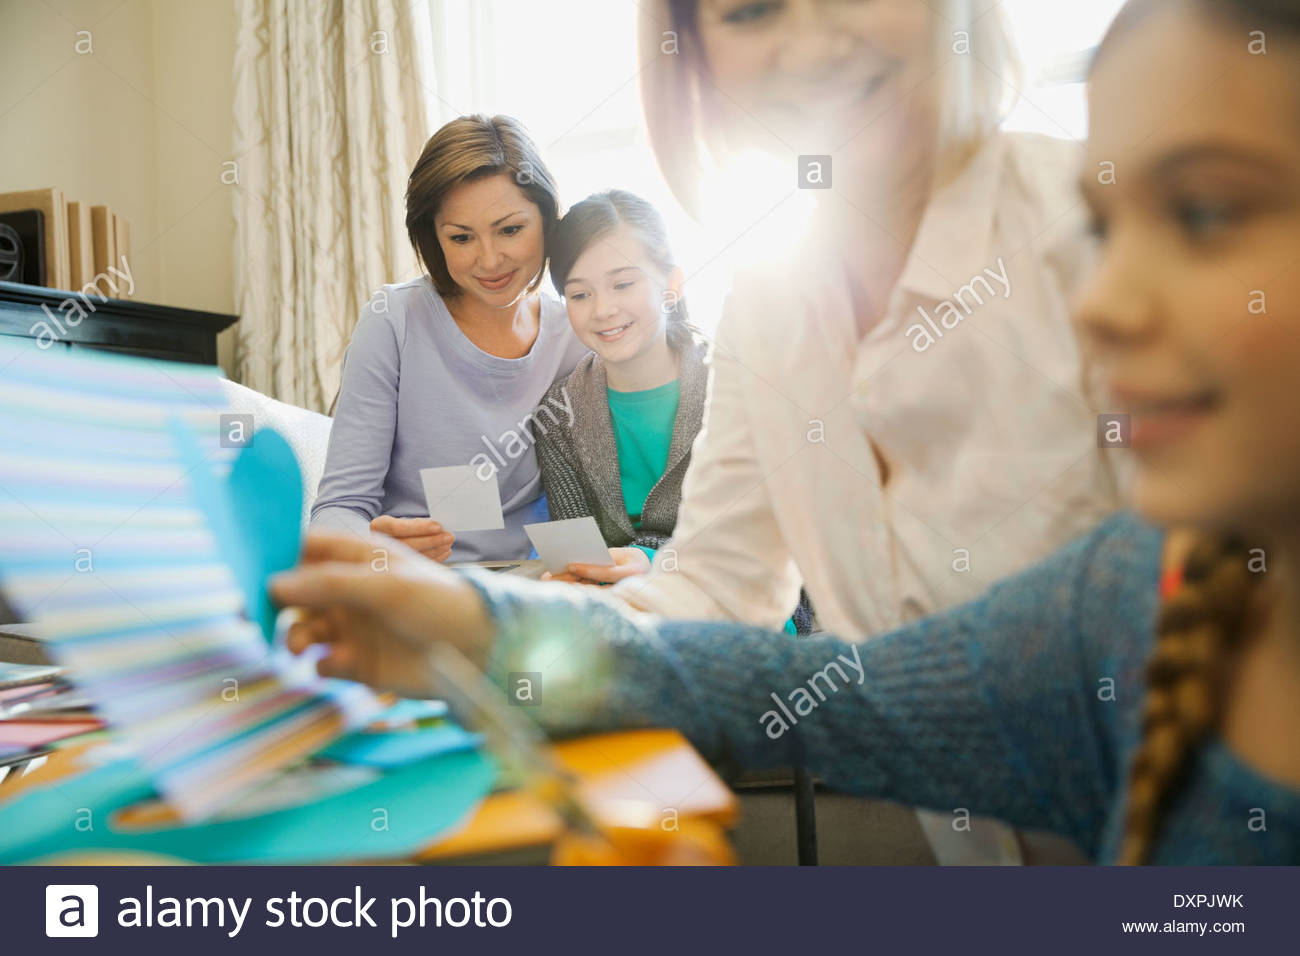 Smiling mother and daughter looking at photos while scrapbooking - Stock Image